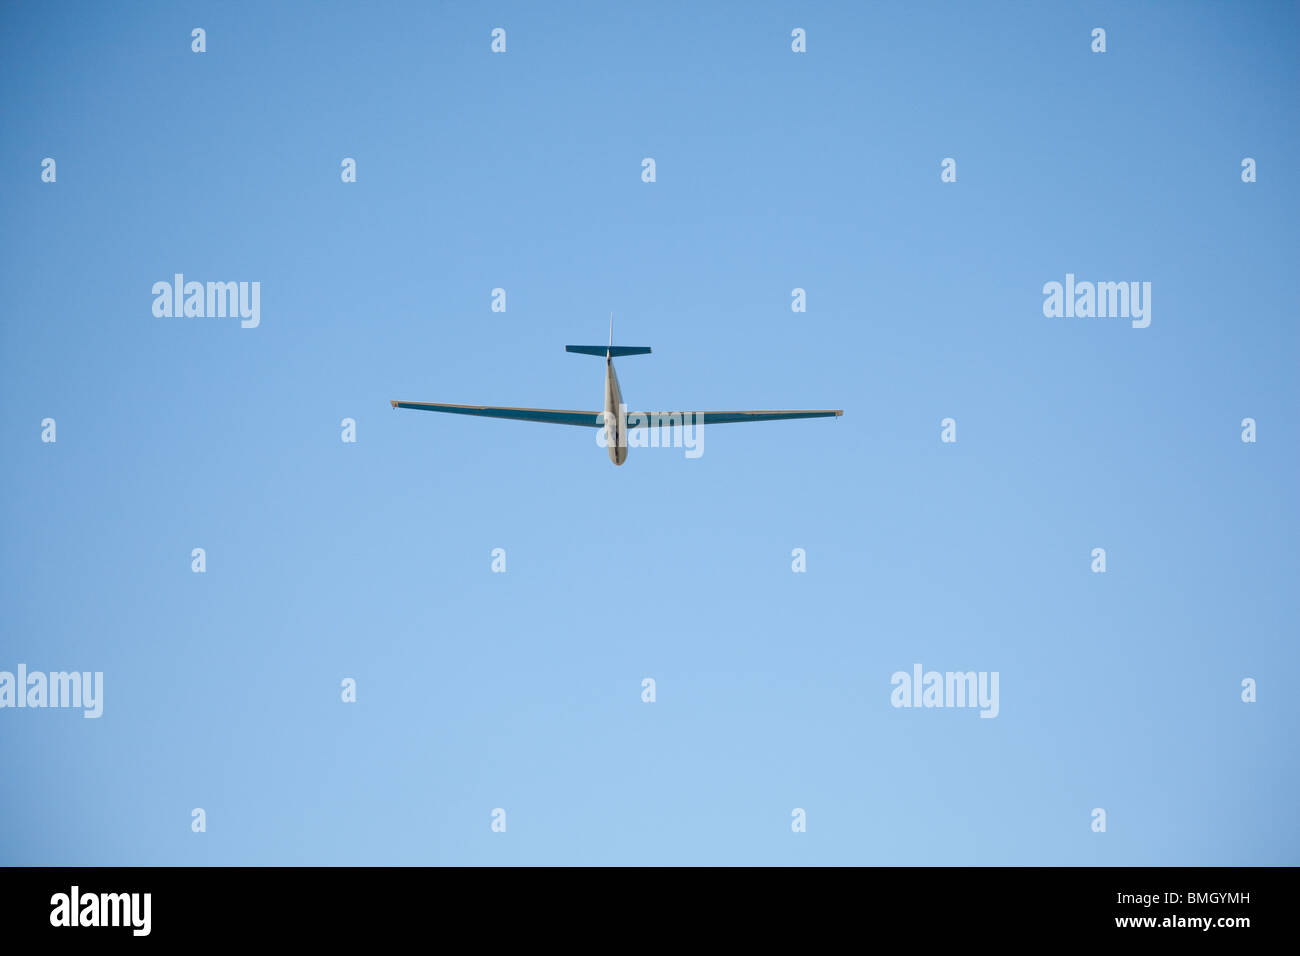 Glider plane against clear blue sky - Stock Image